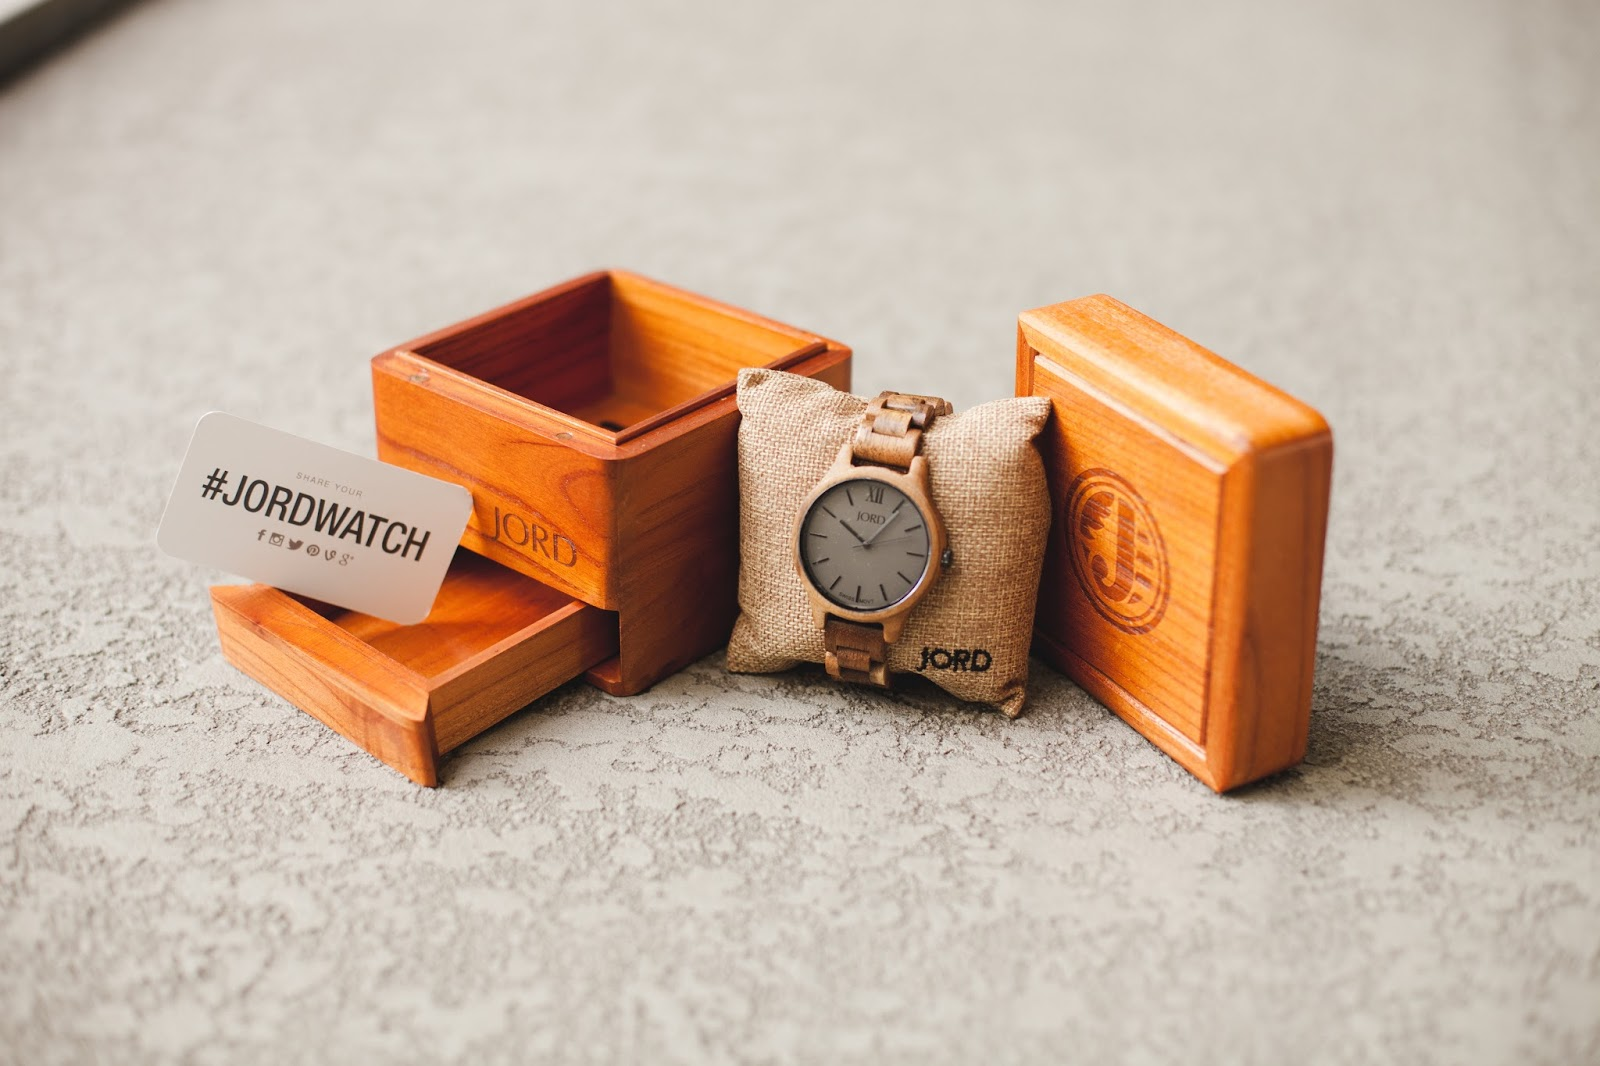 #JORDWATCH | JORD Wooden Watches